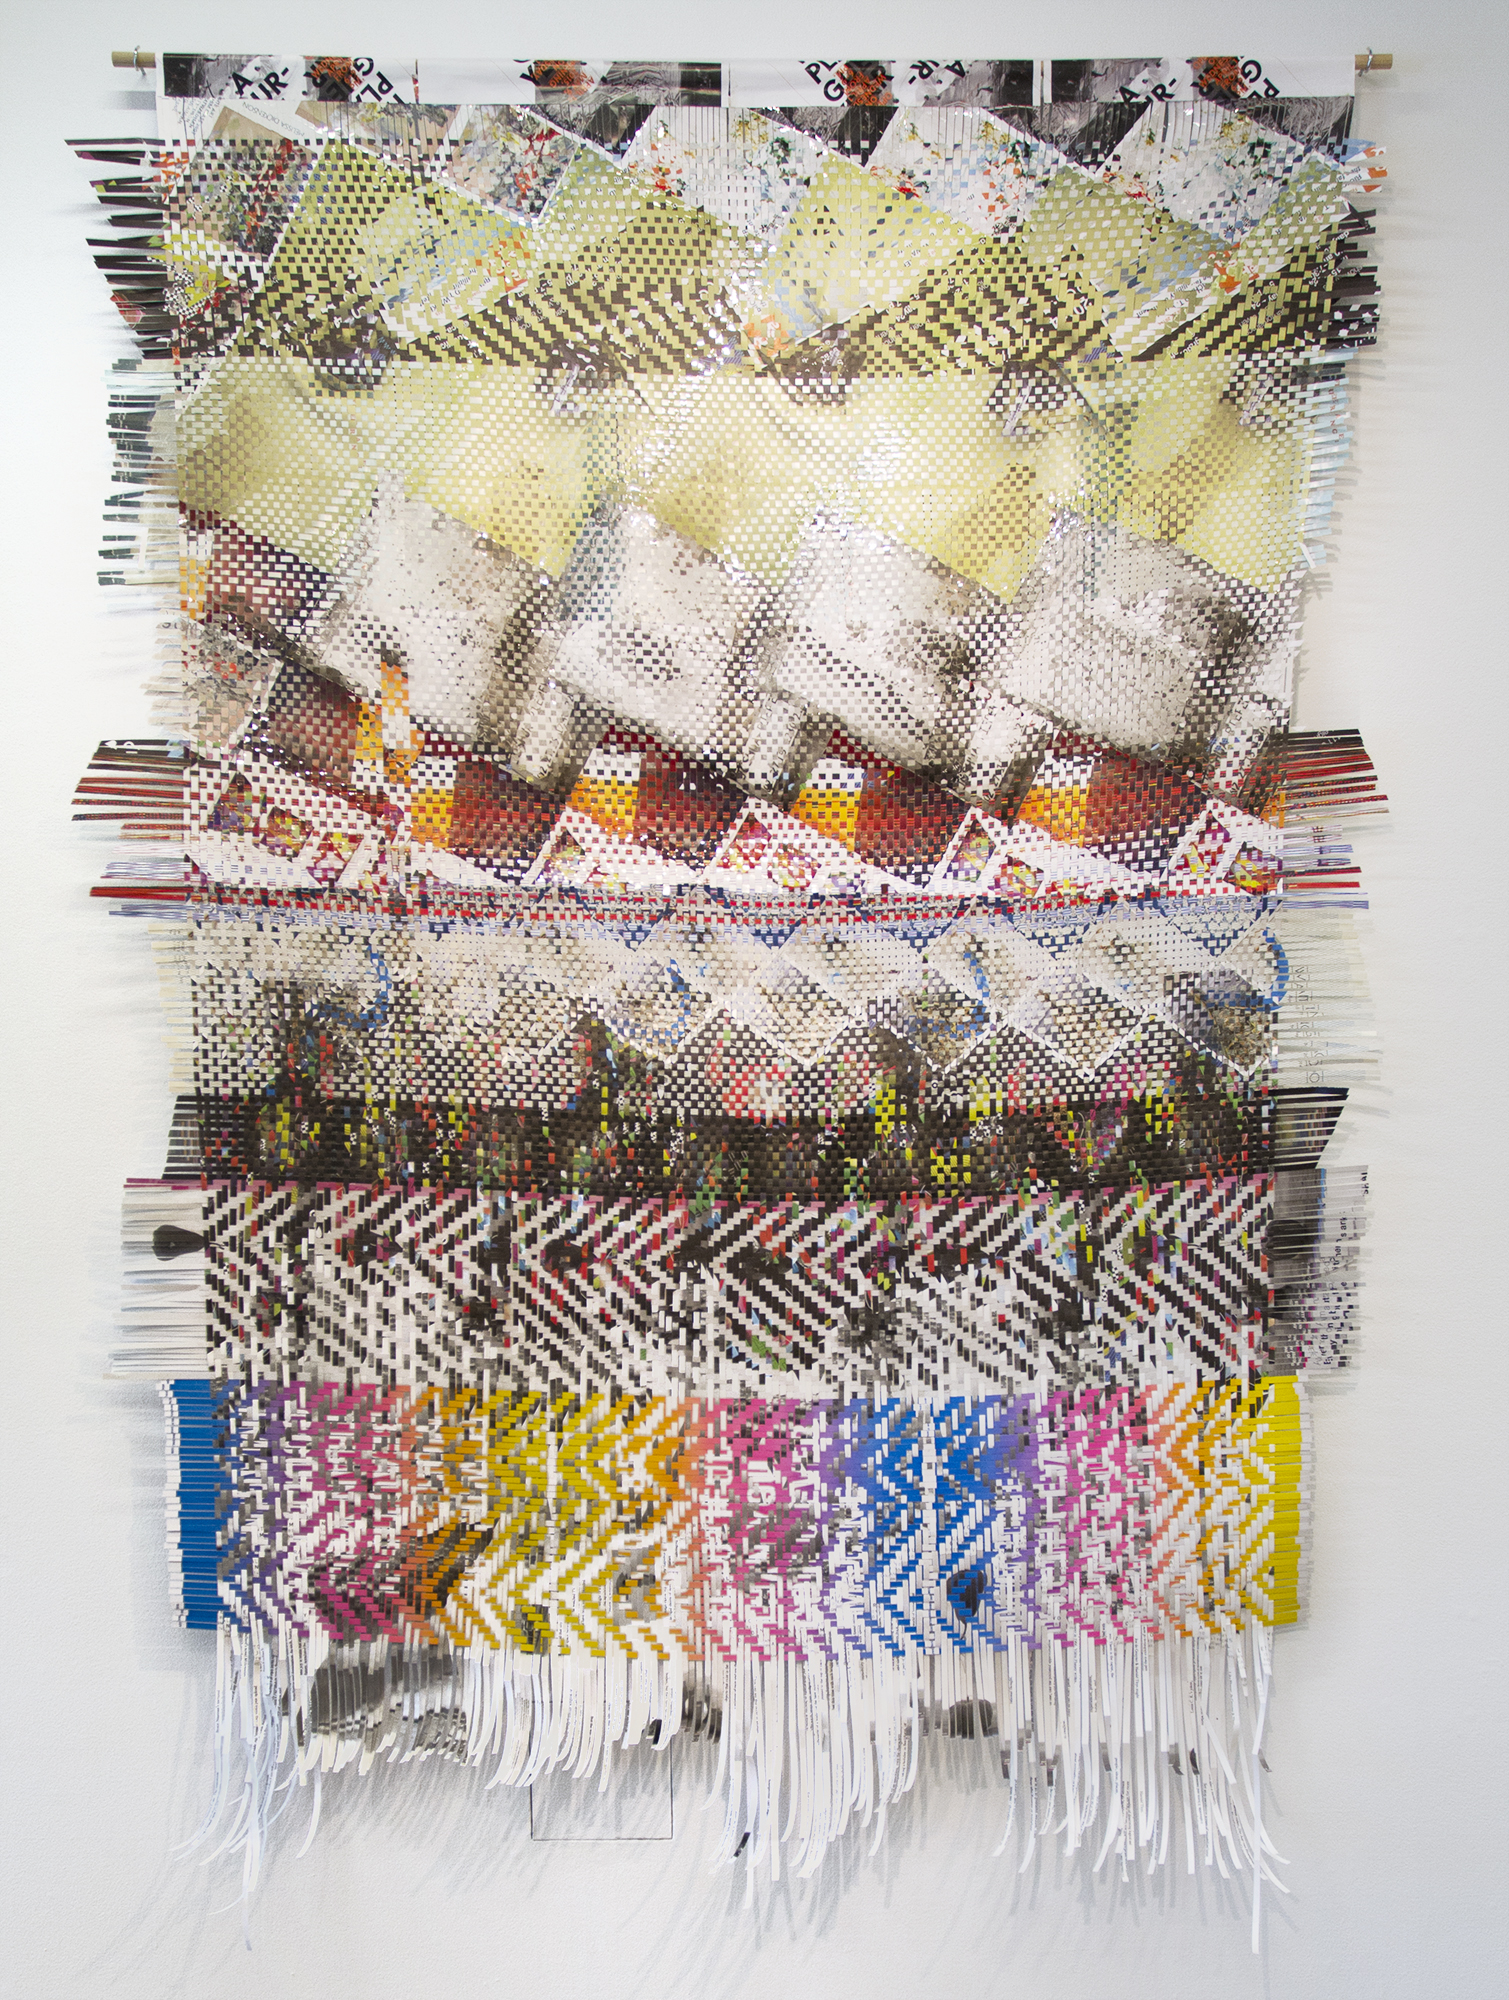 New California, 2015, woven paper ephemera from California  art exhibitions, 103 x 73